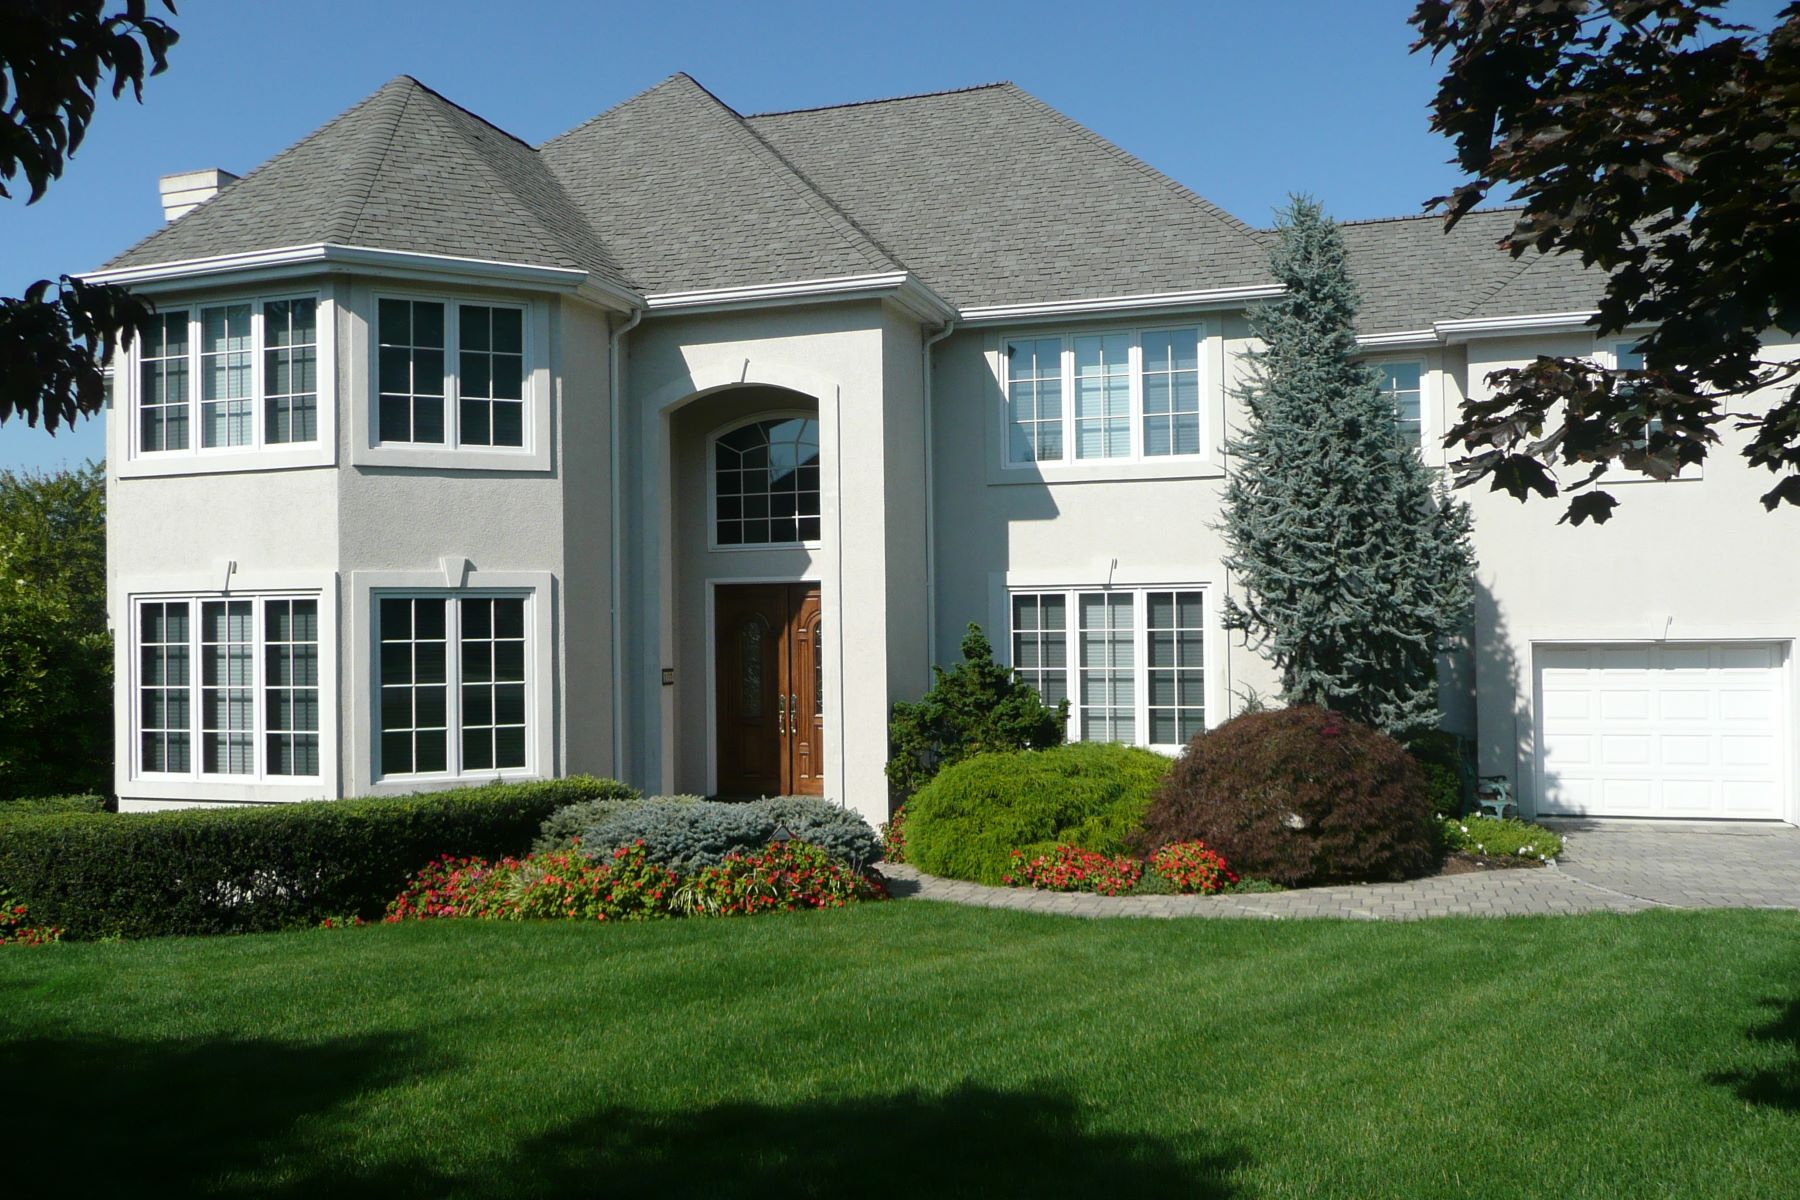 Single Family Home for Sale at Modern & Classic 10 Blackledge Ct, Closter, New Jersey 07626 United States